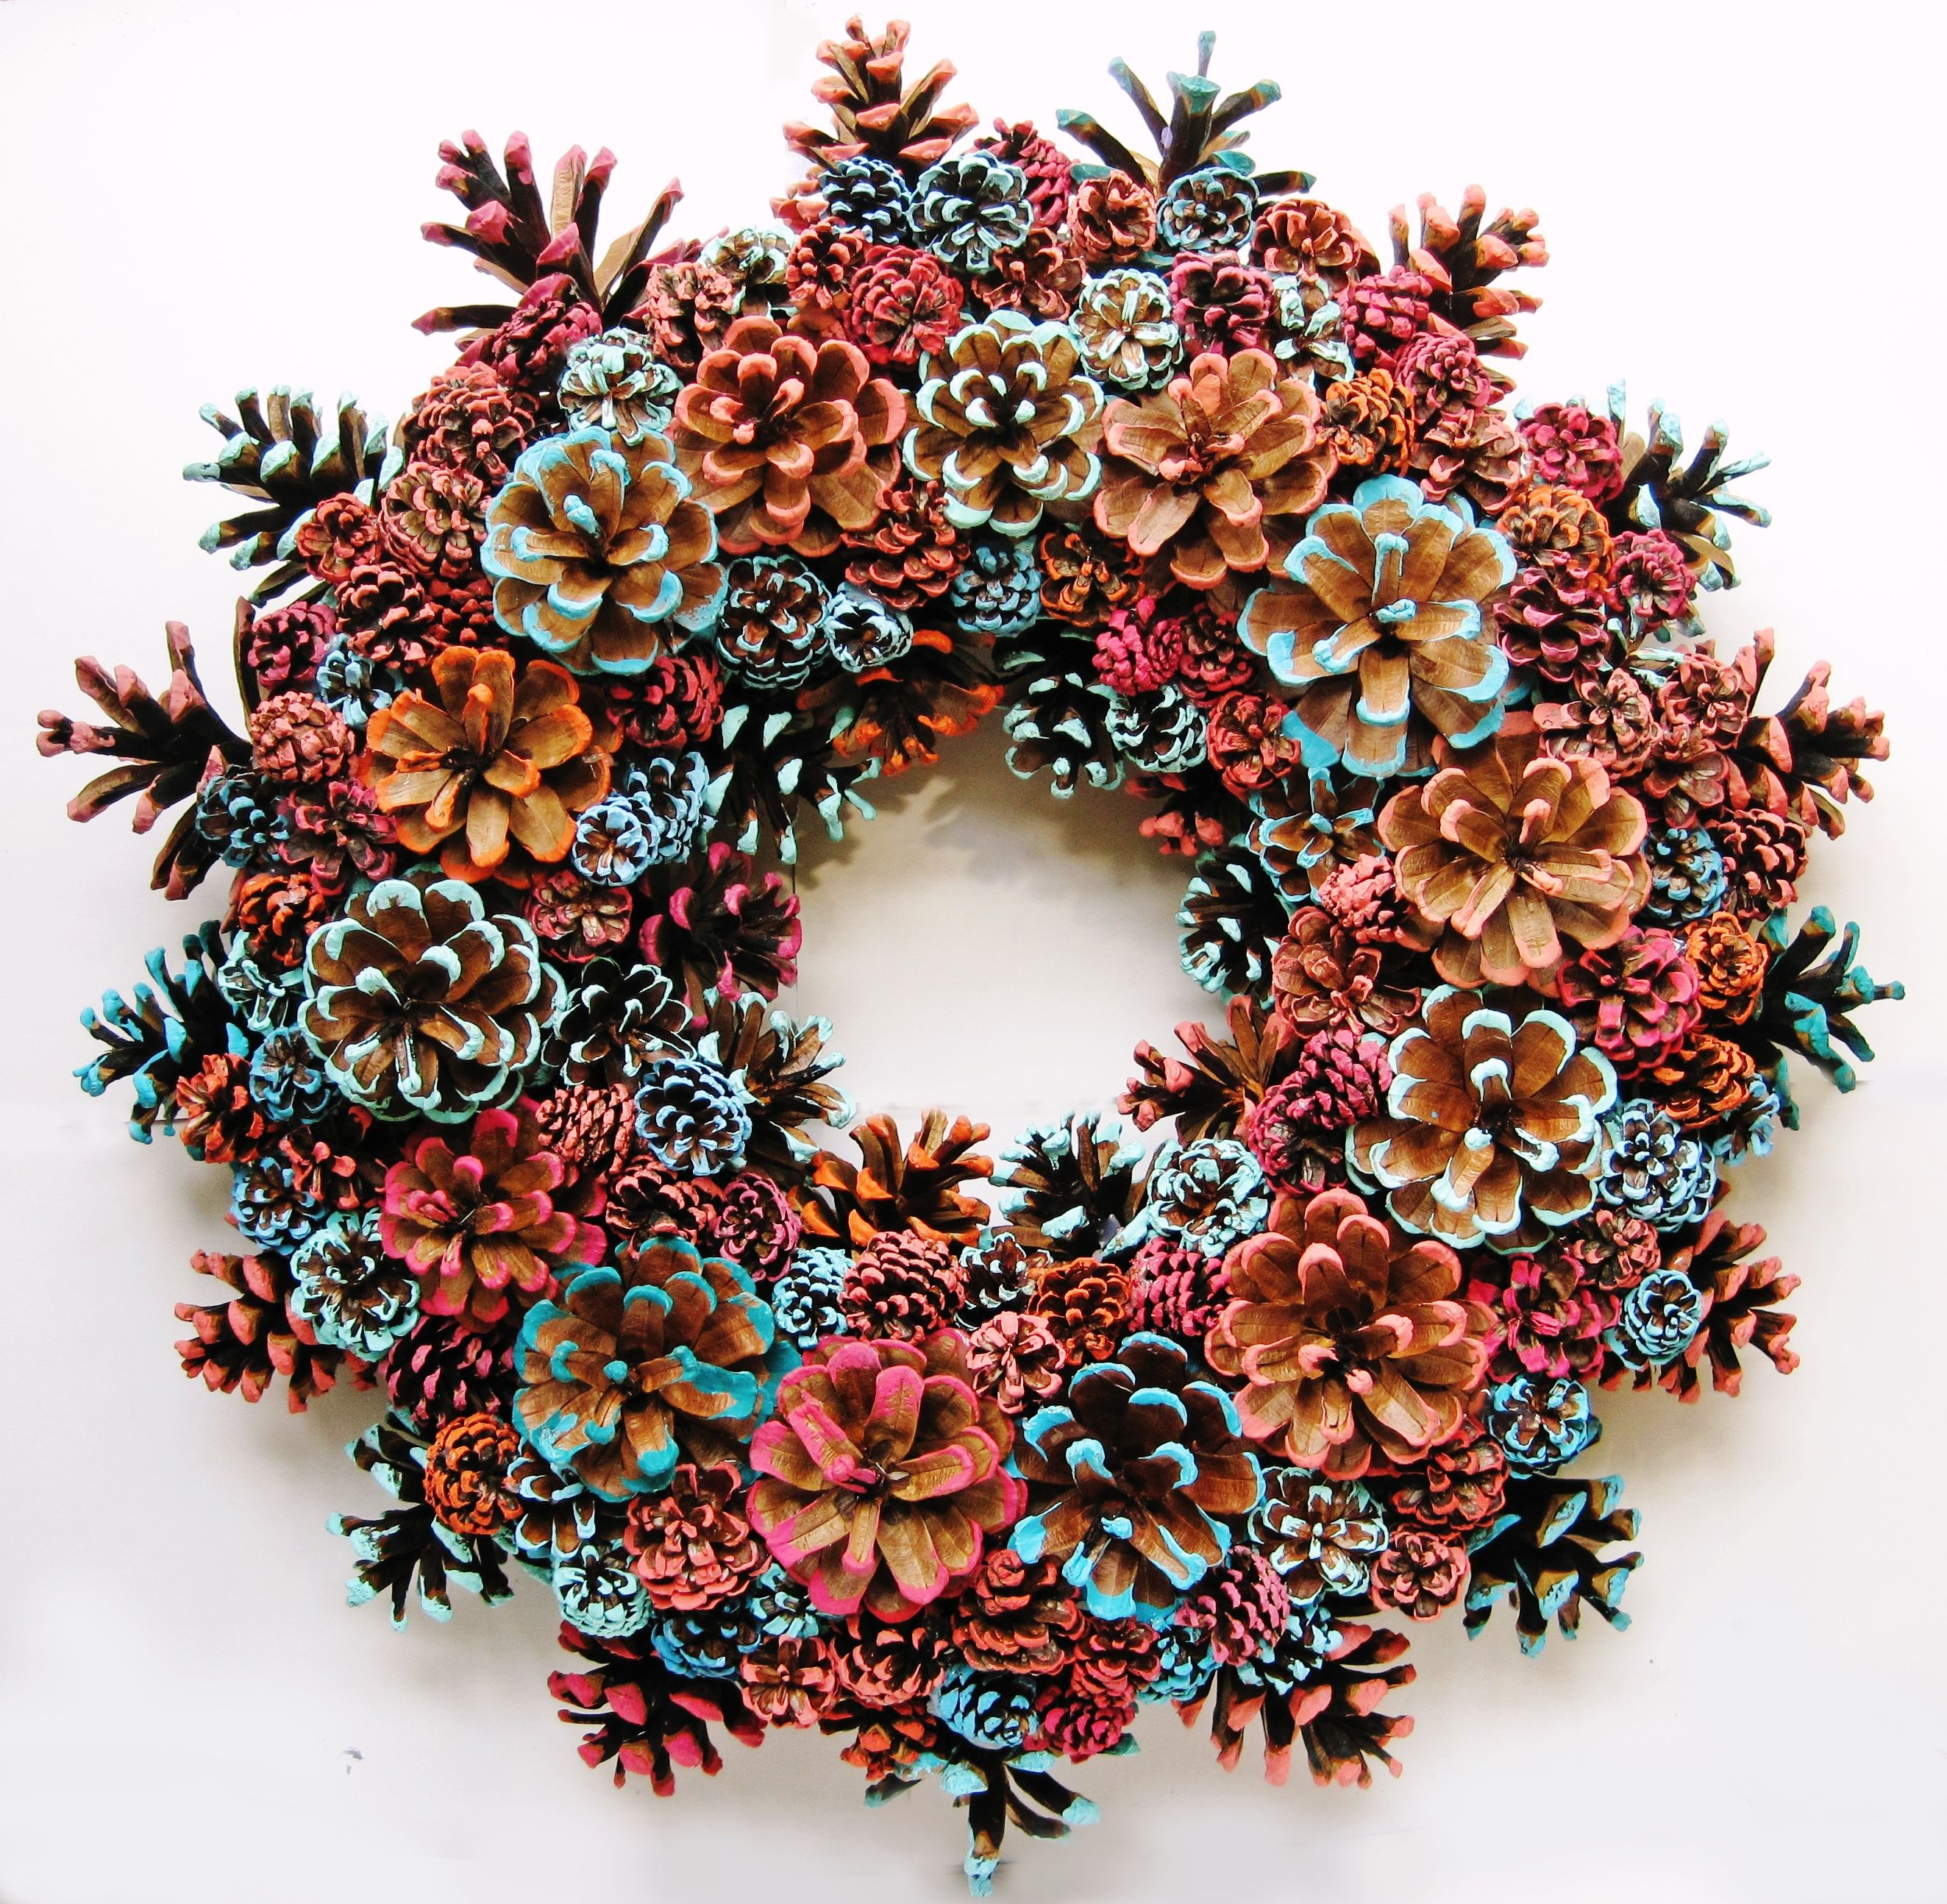 Pin By EacArt On Handmade Pine Cone Wreaths